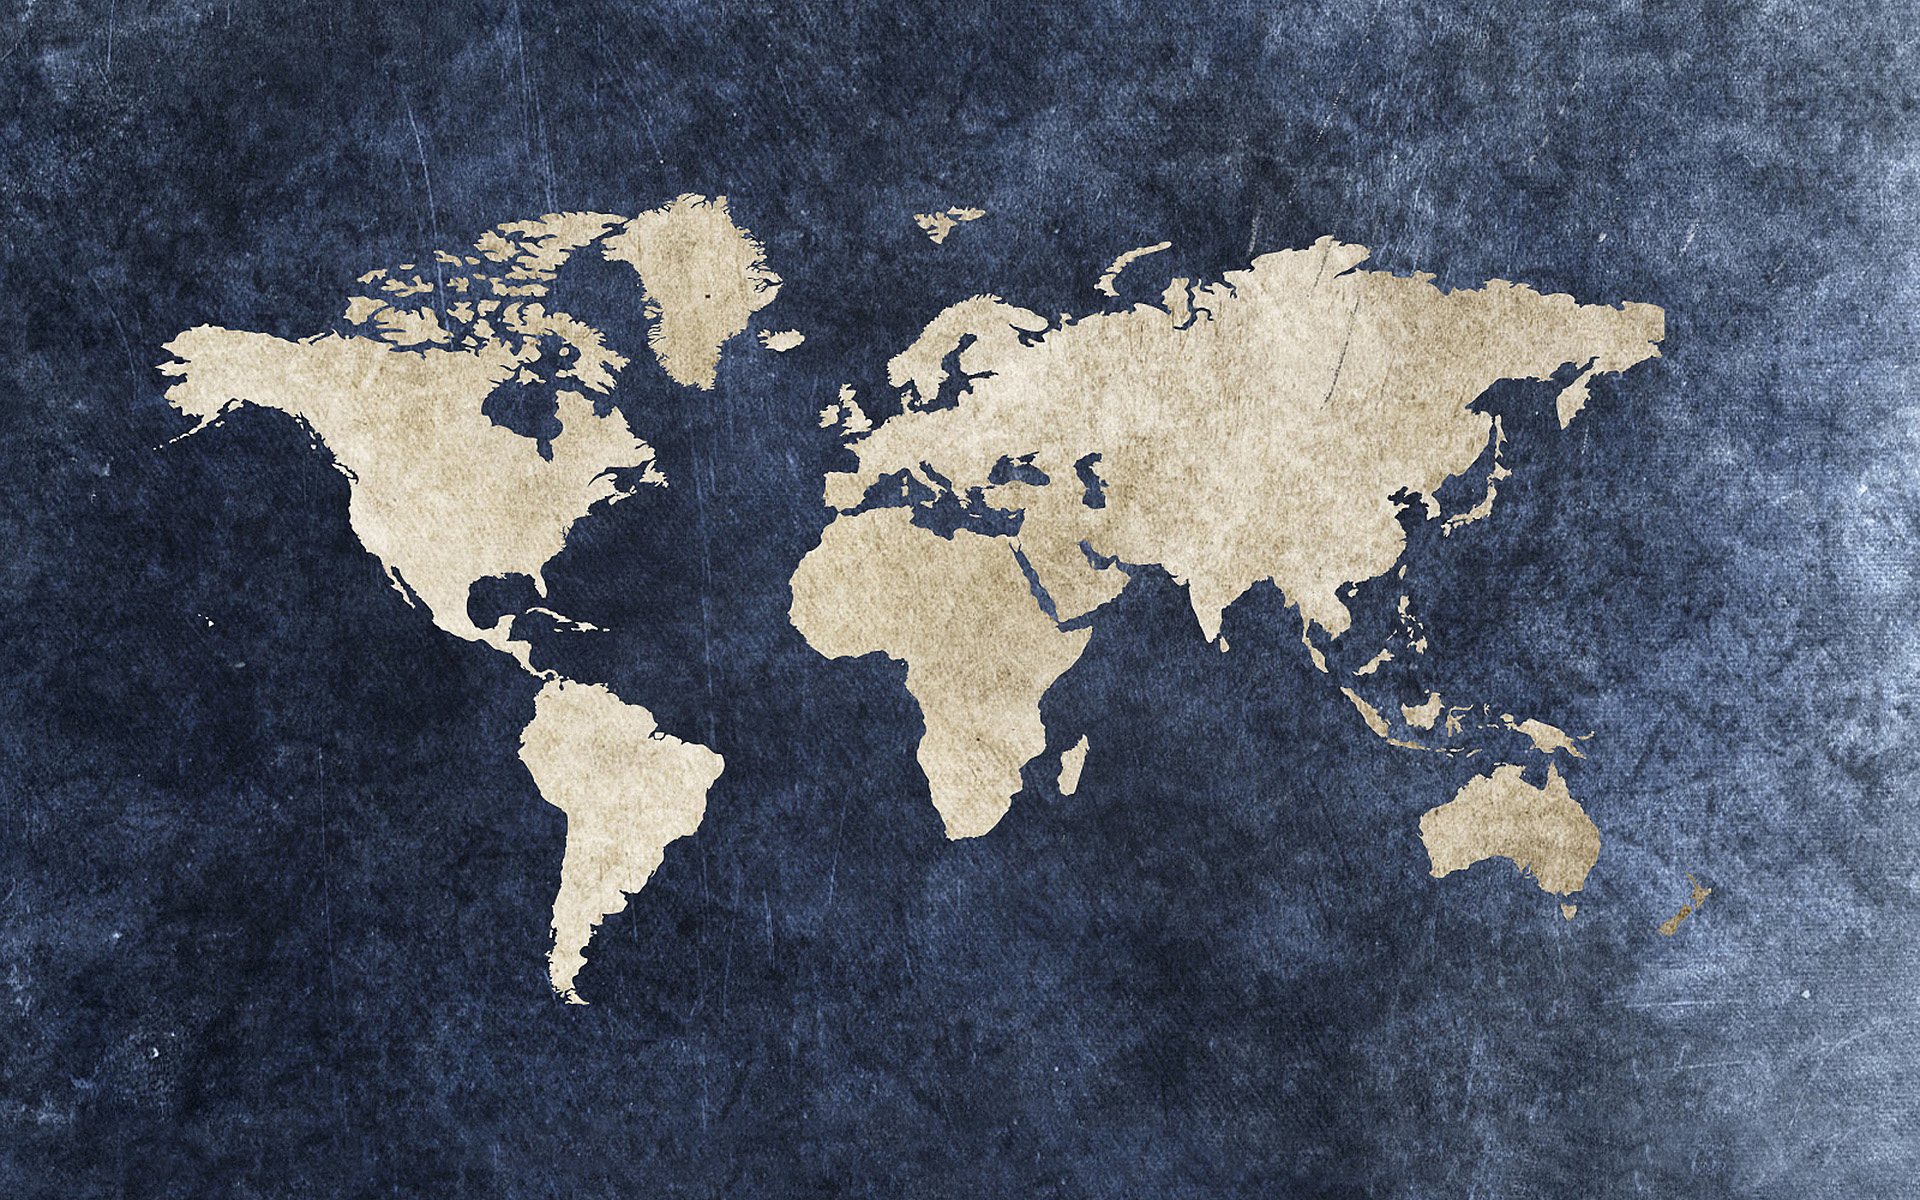 Travel Map Wallpaper 48226 our archive is updated on daily basis with ... Christian Bale